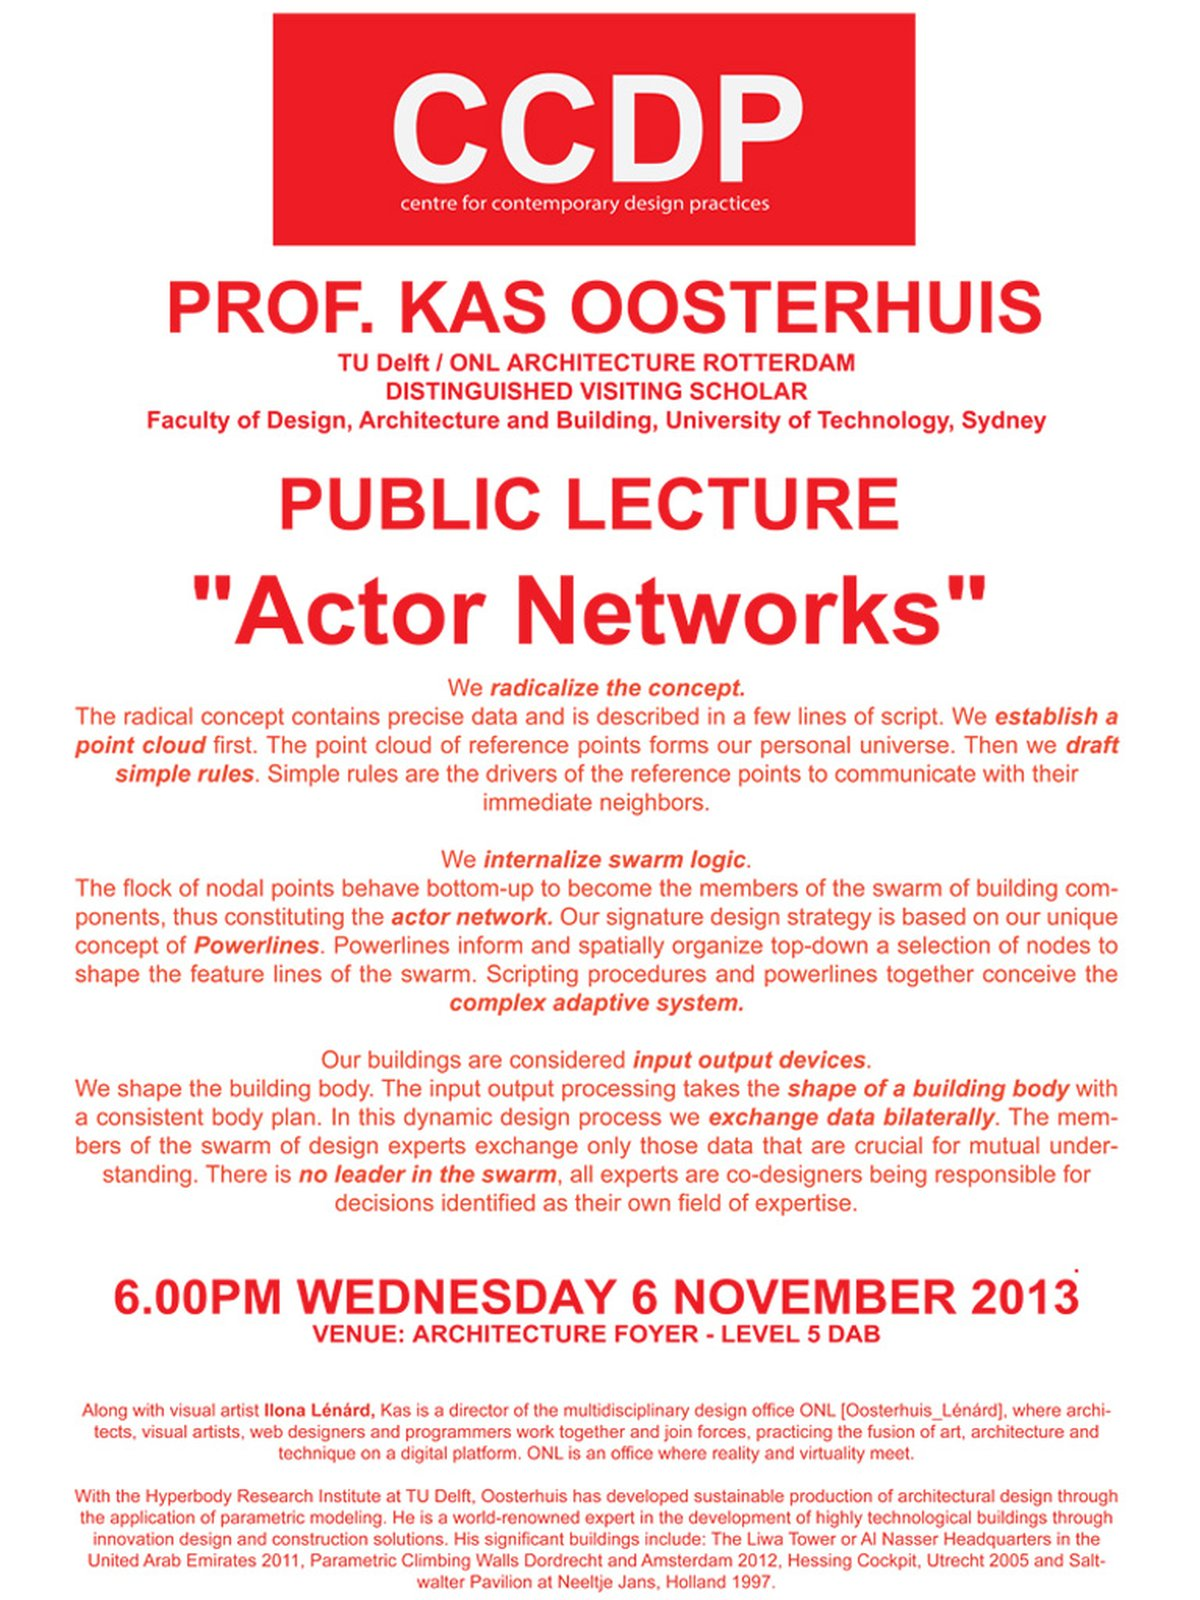 prof  Kas Oosterhuis will lecture at CCDP, University of